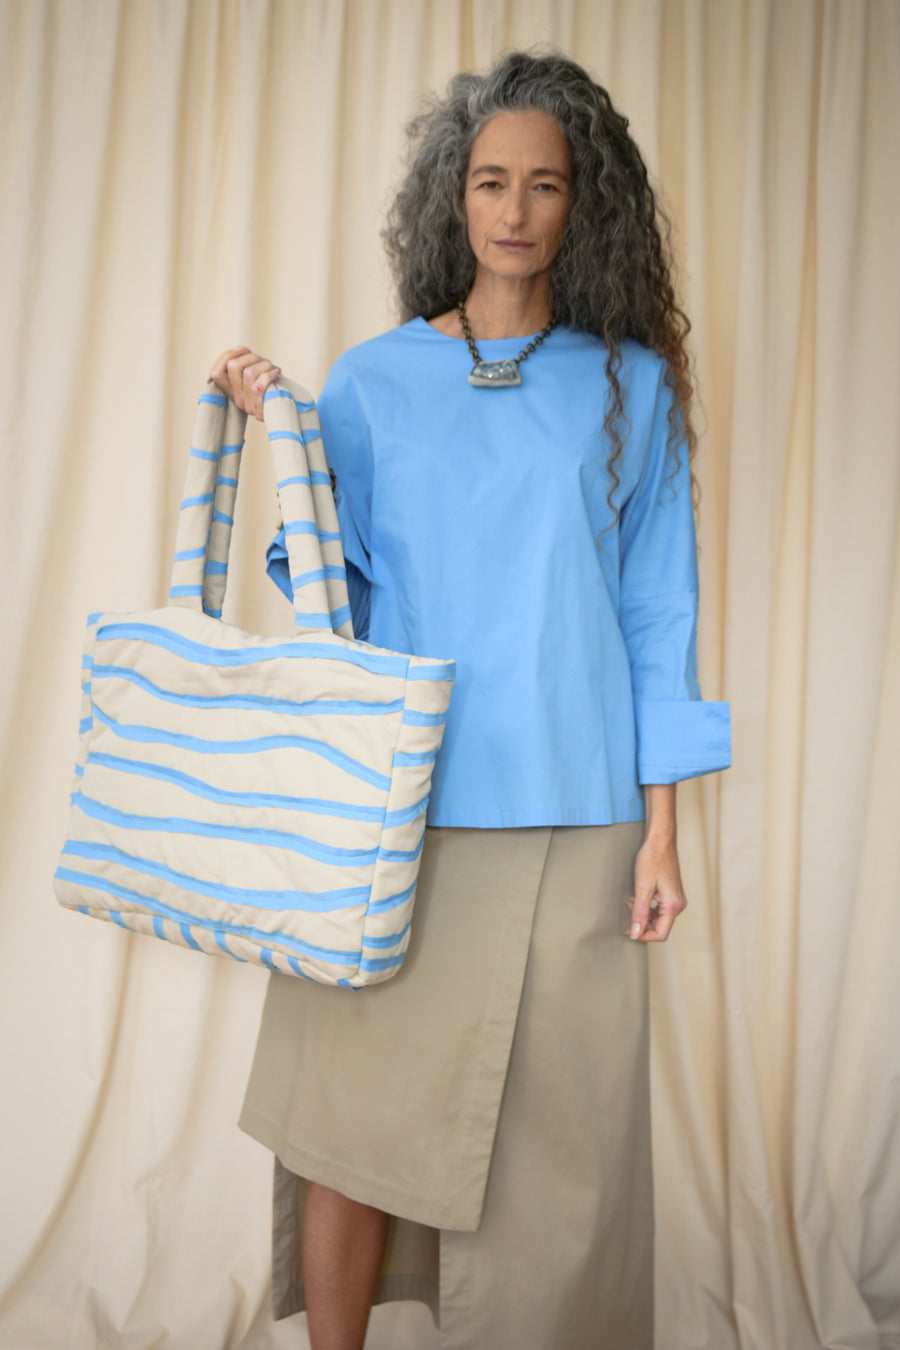 Beige And Light Blue Pillow Bag - OFIR IVGI